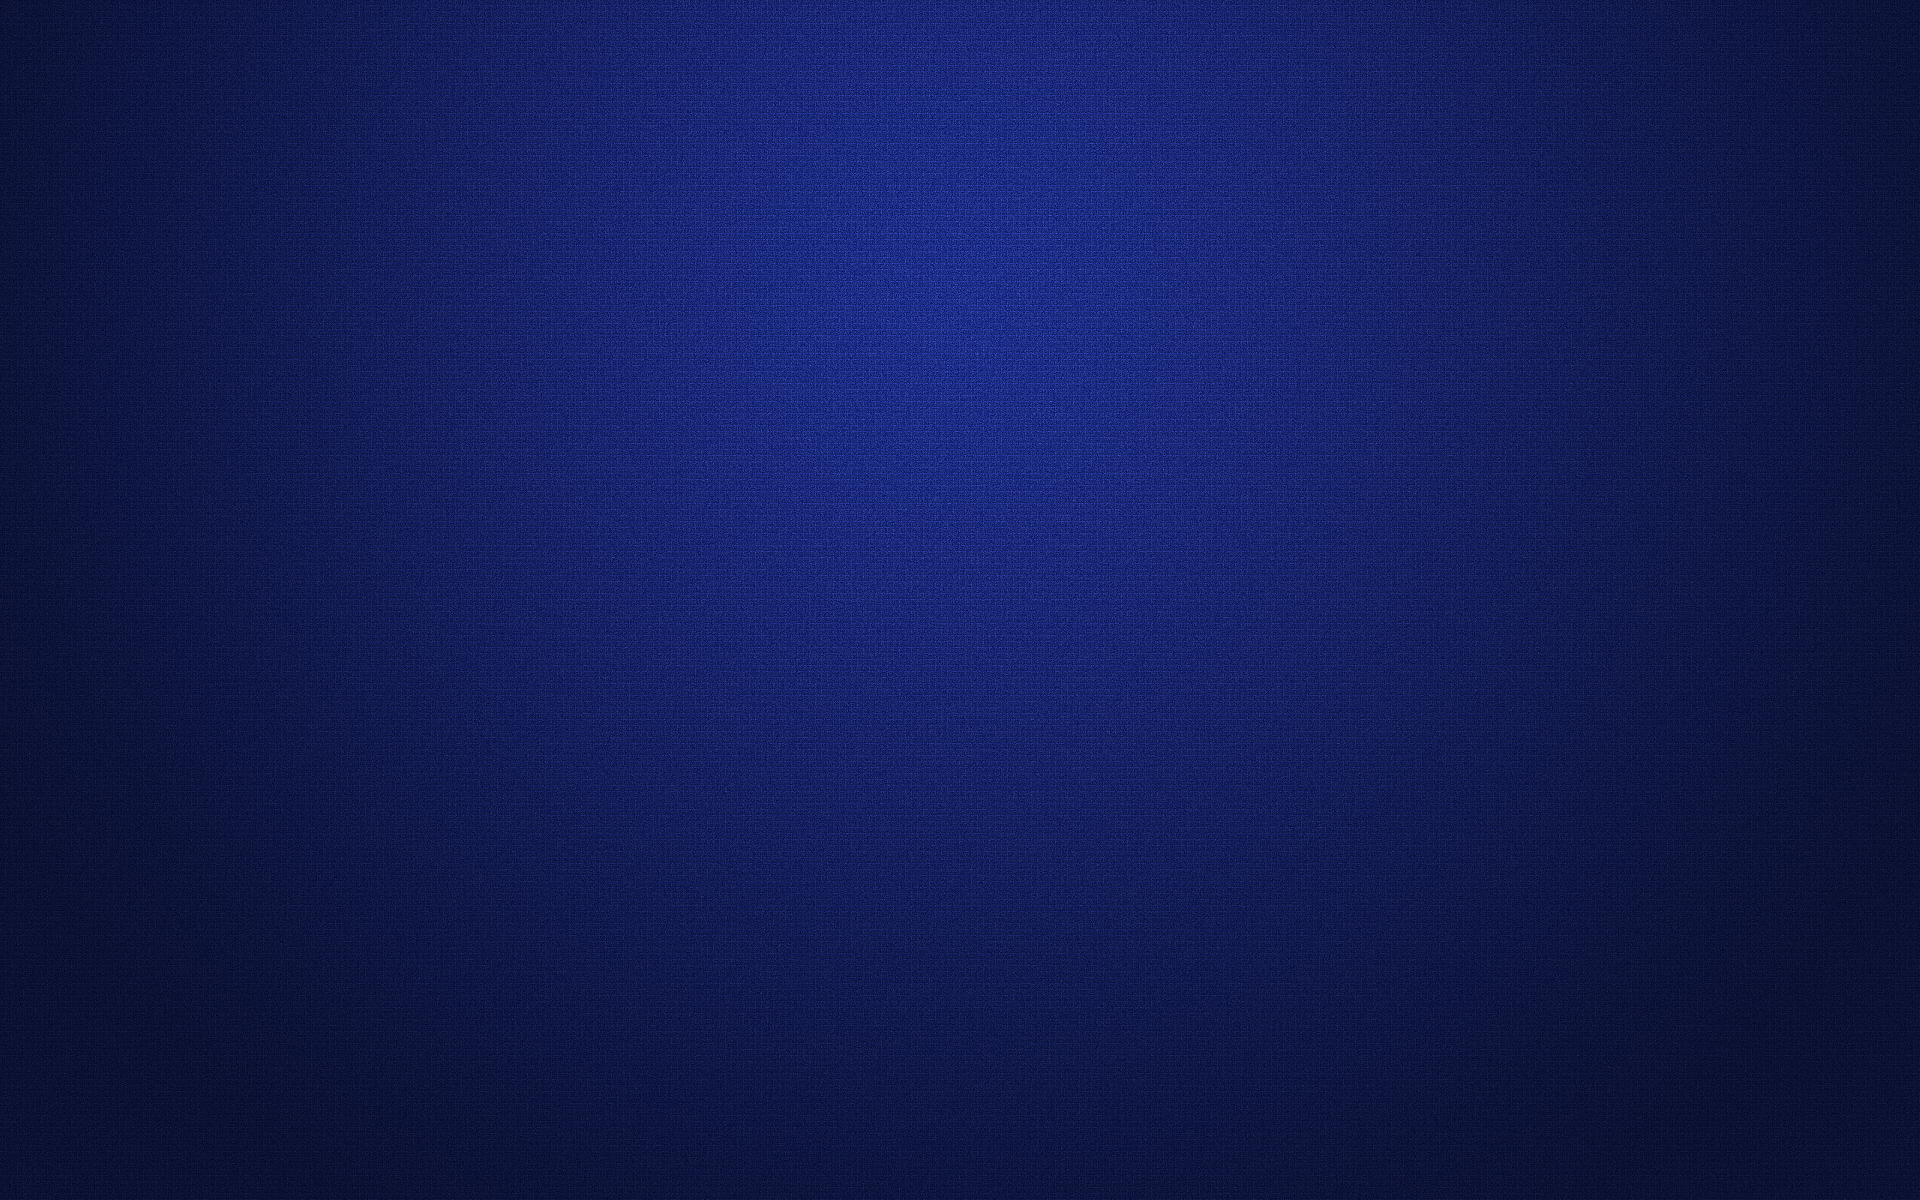 Midnight Blue Background 1920x1200